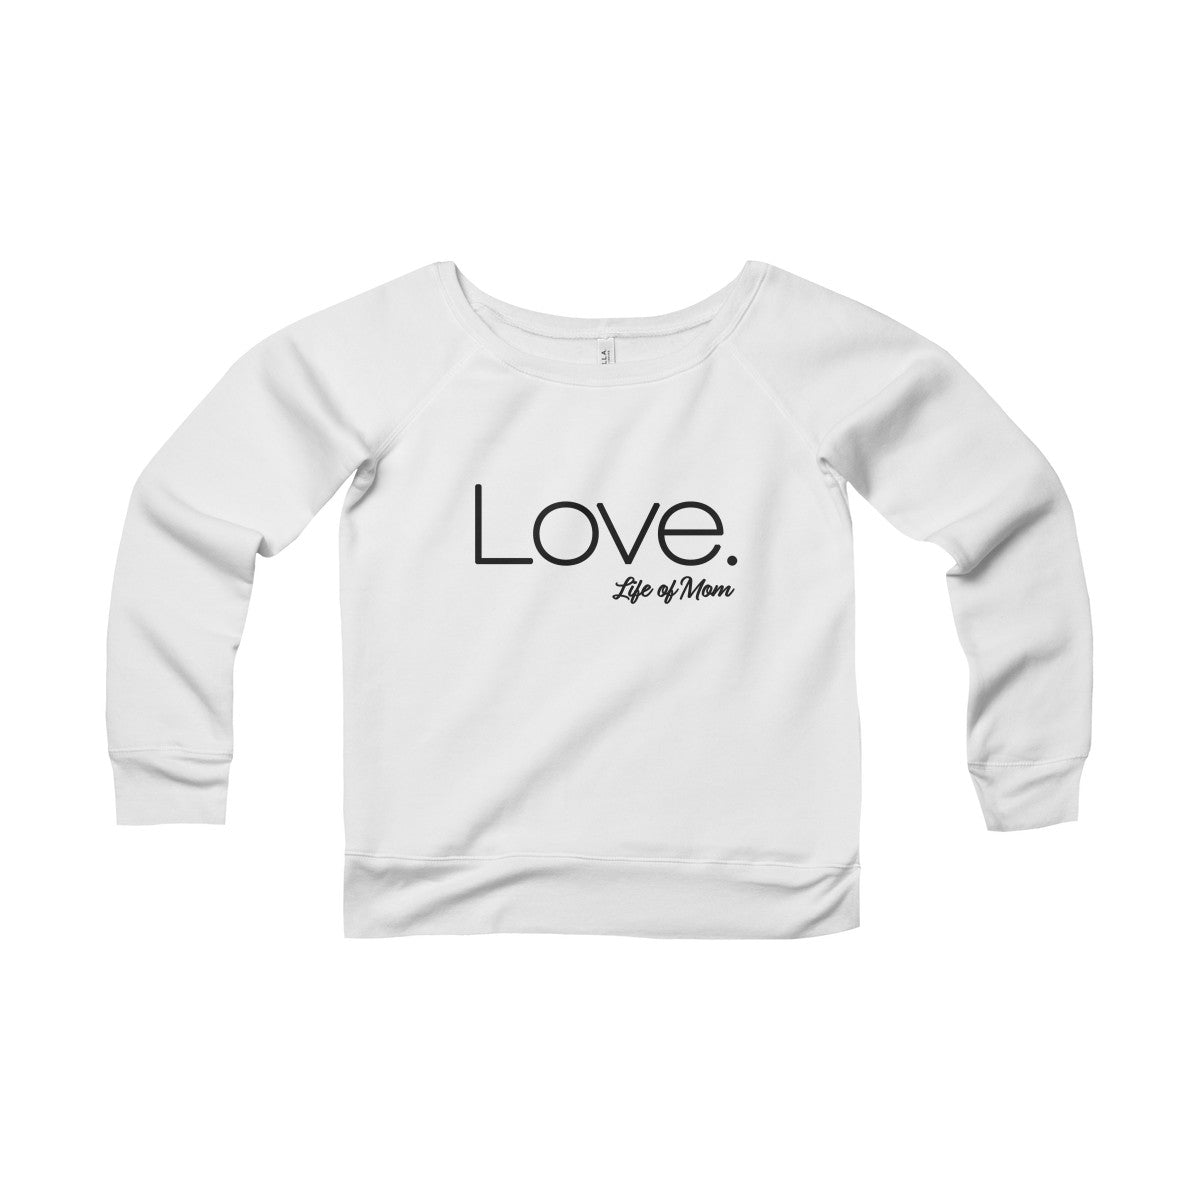 Love Sweatshirt - Life of Mom